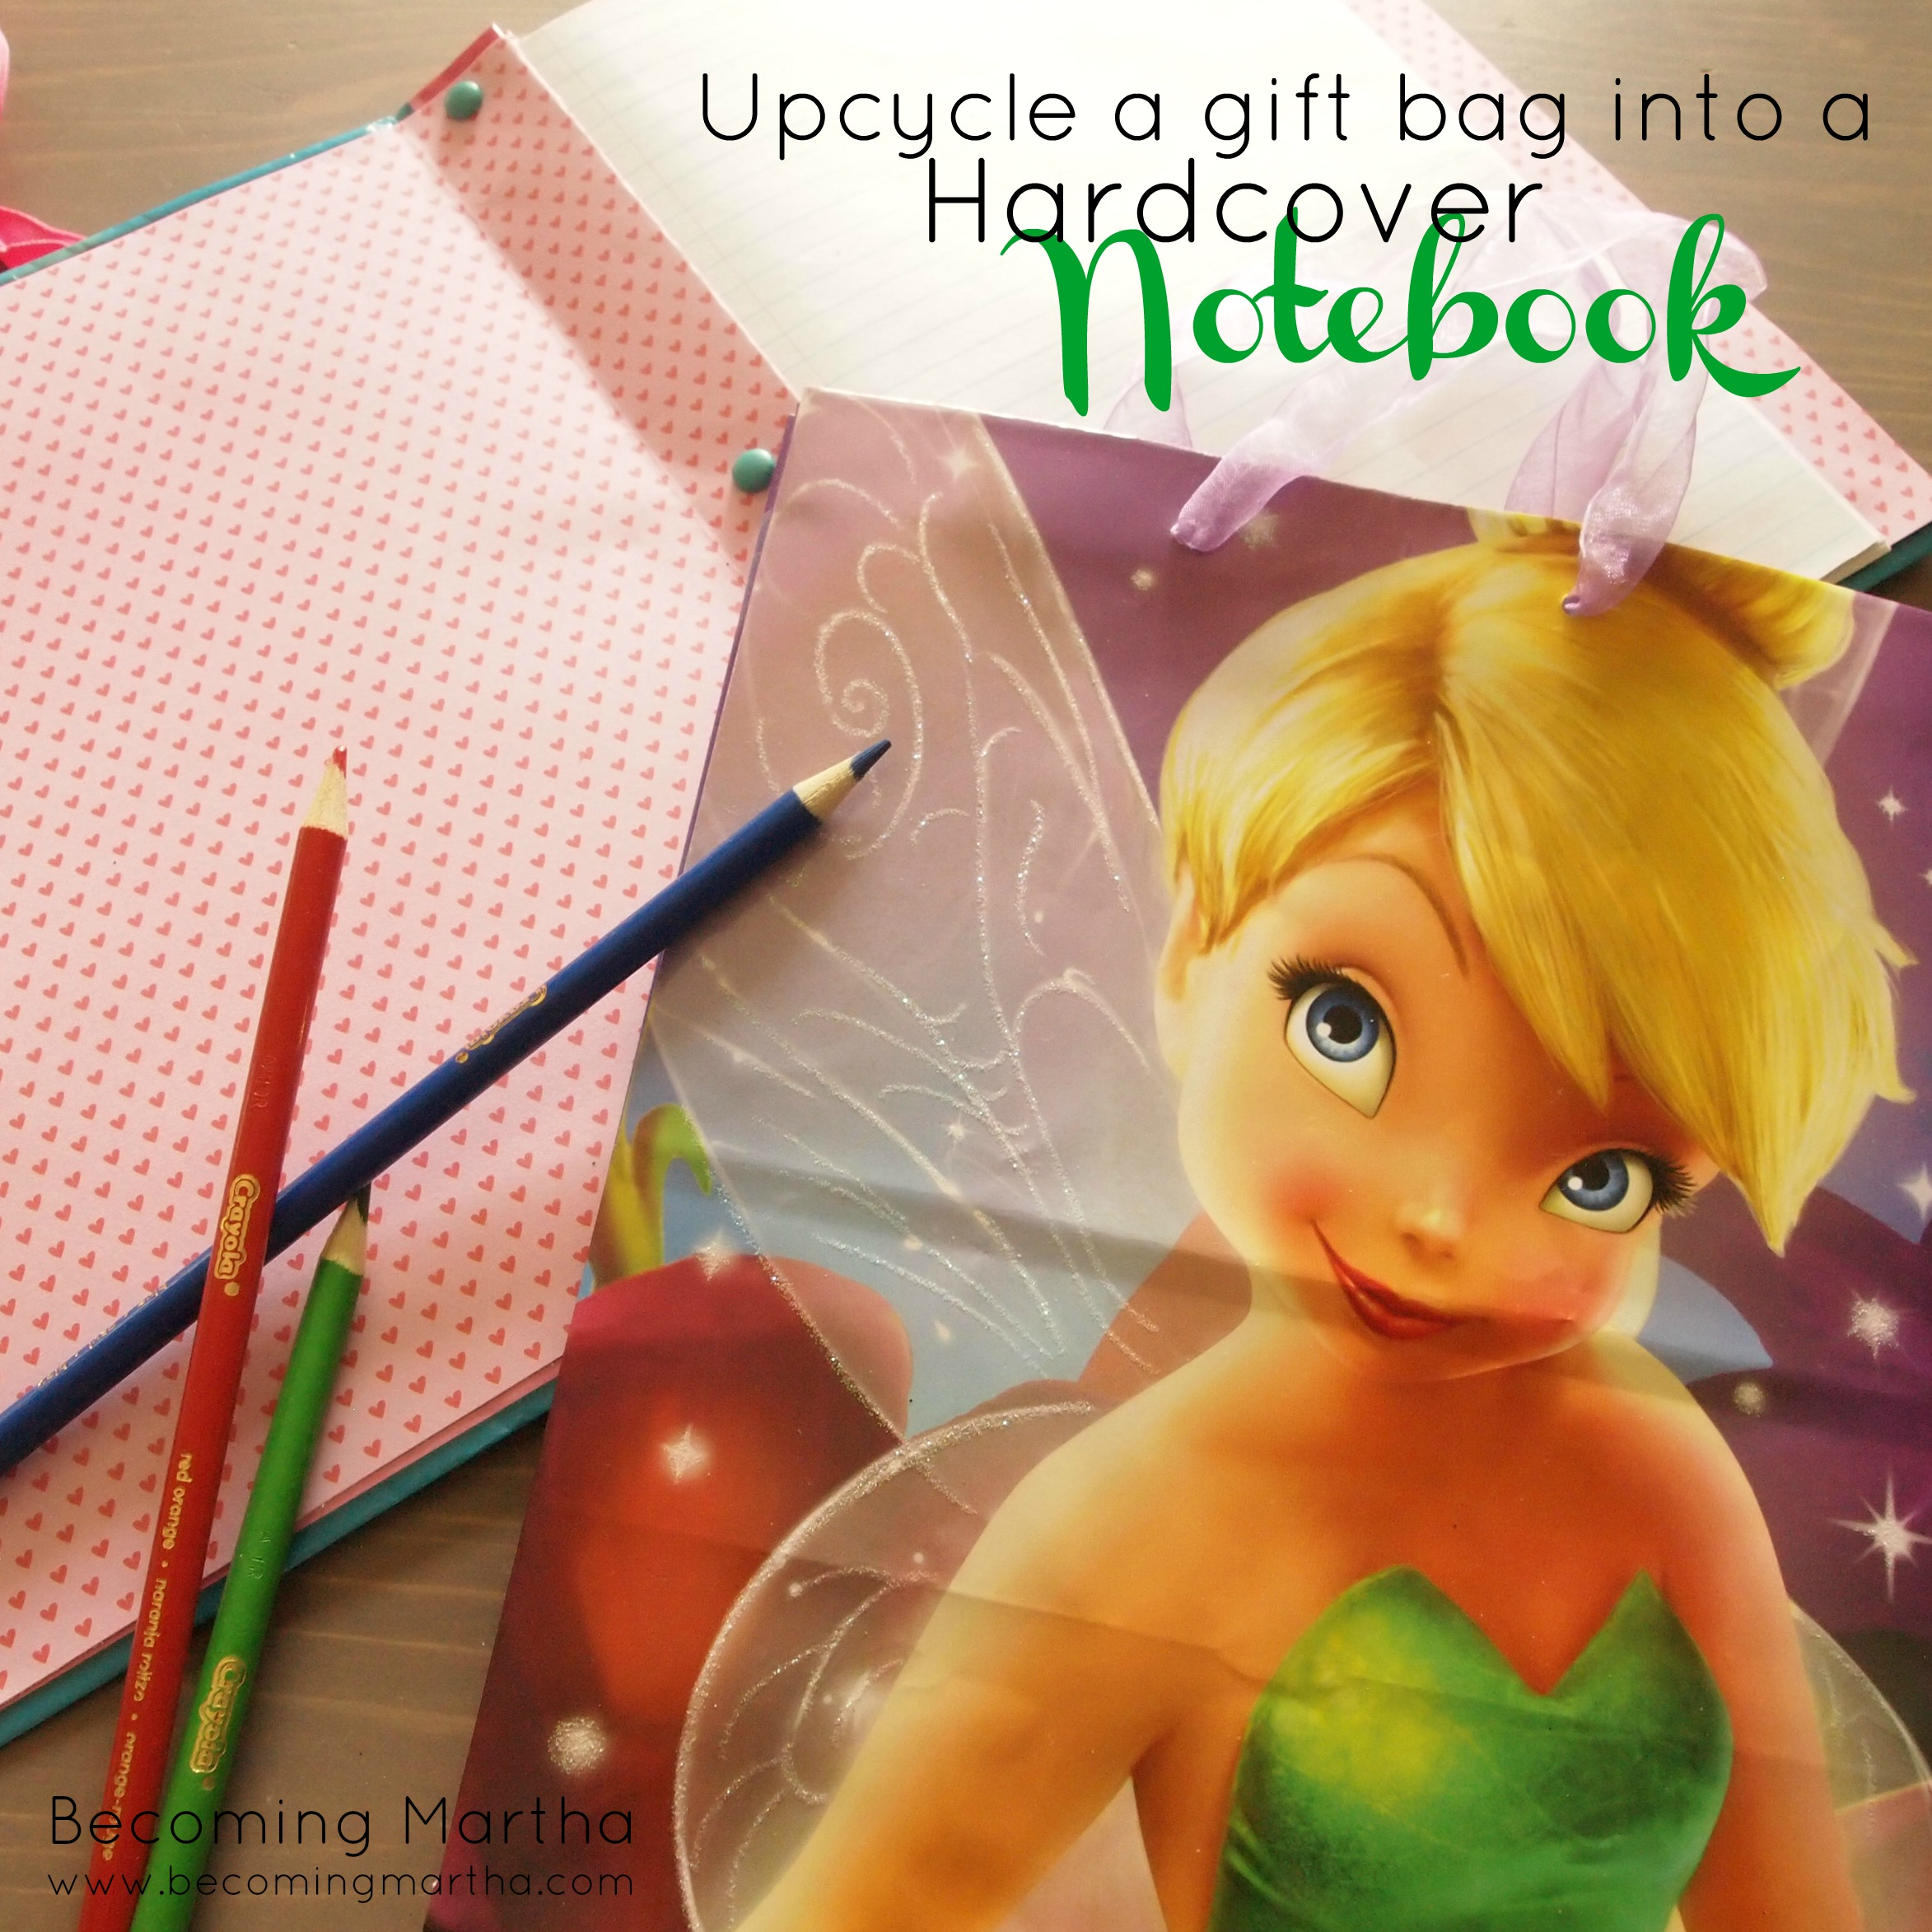 Upcycle Gift Bags into Hardcovered Notebooks